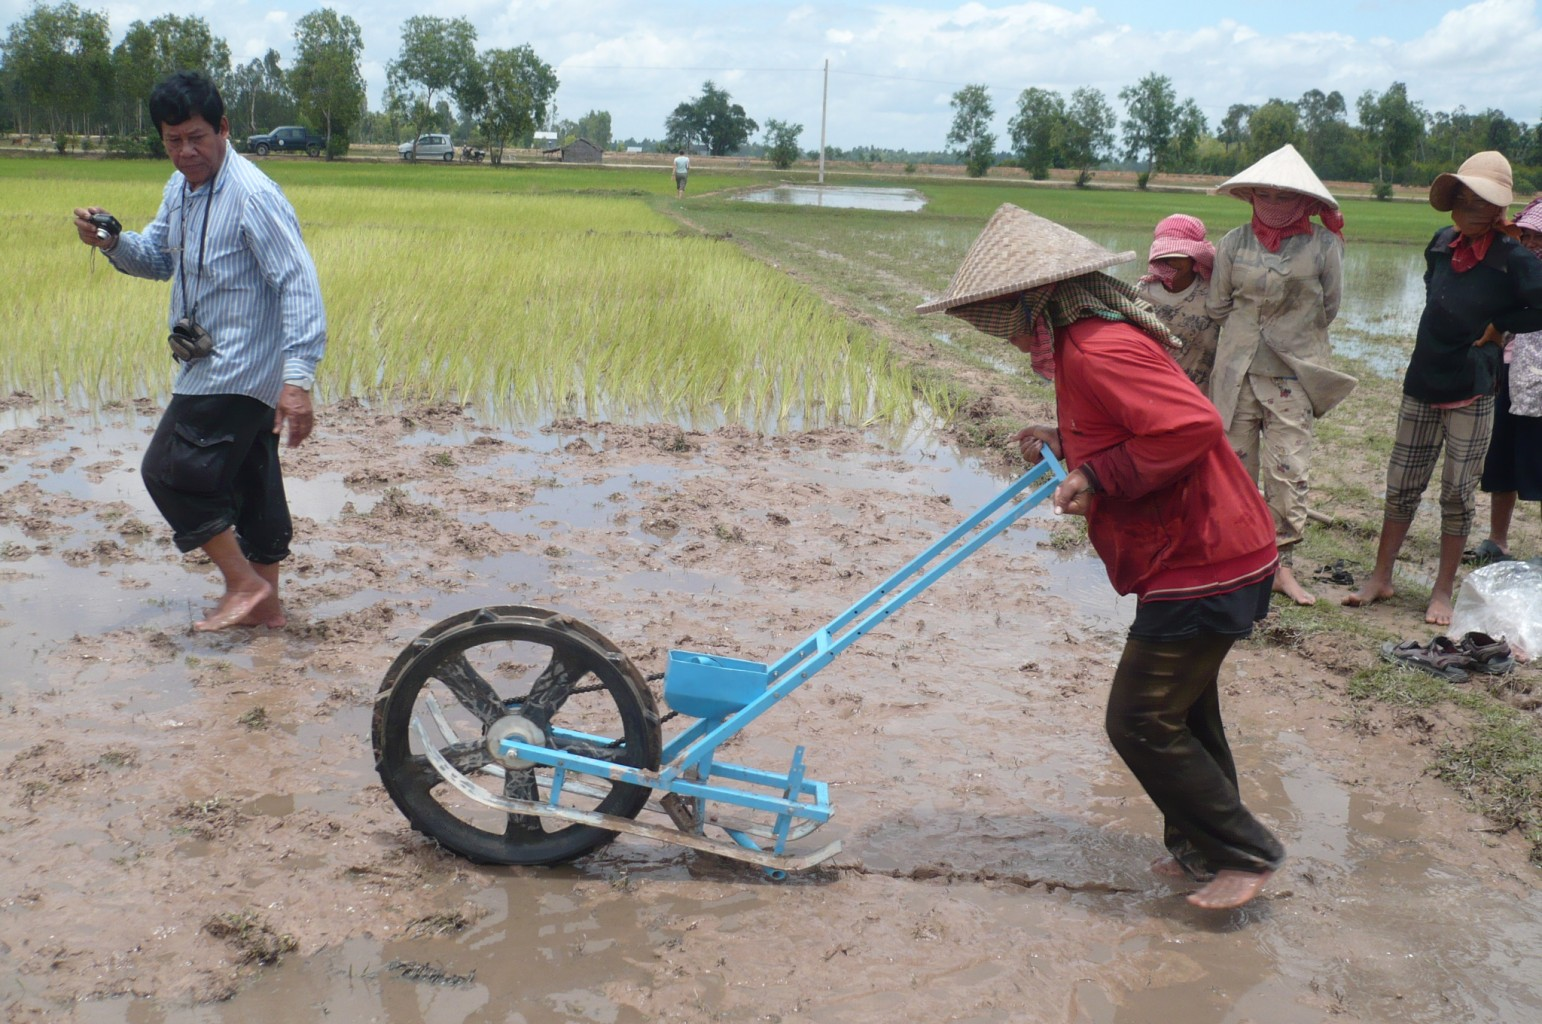 """A """"rice runner"""" inserting fertilizer pellet in a rice paddy in southeast Asia."""